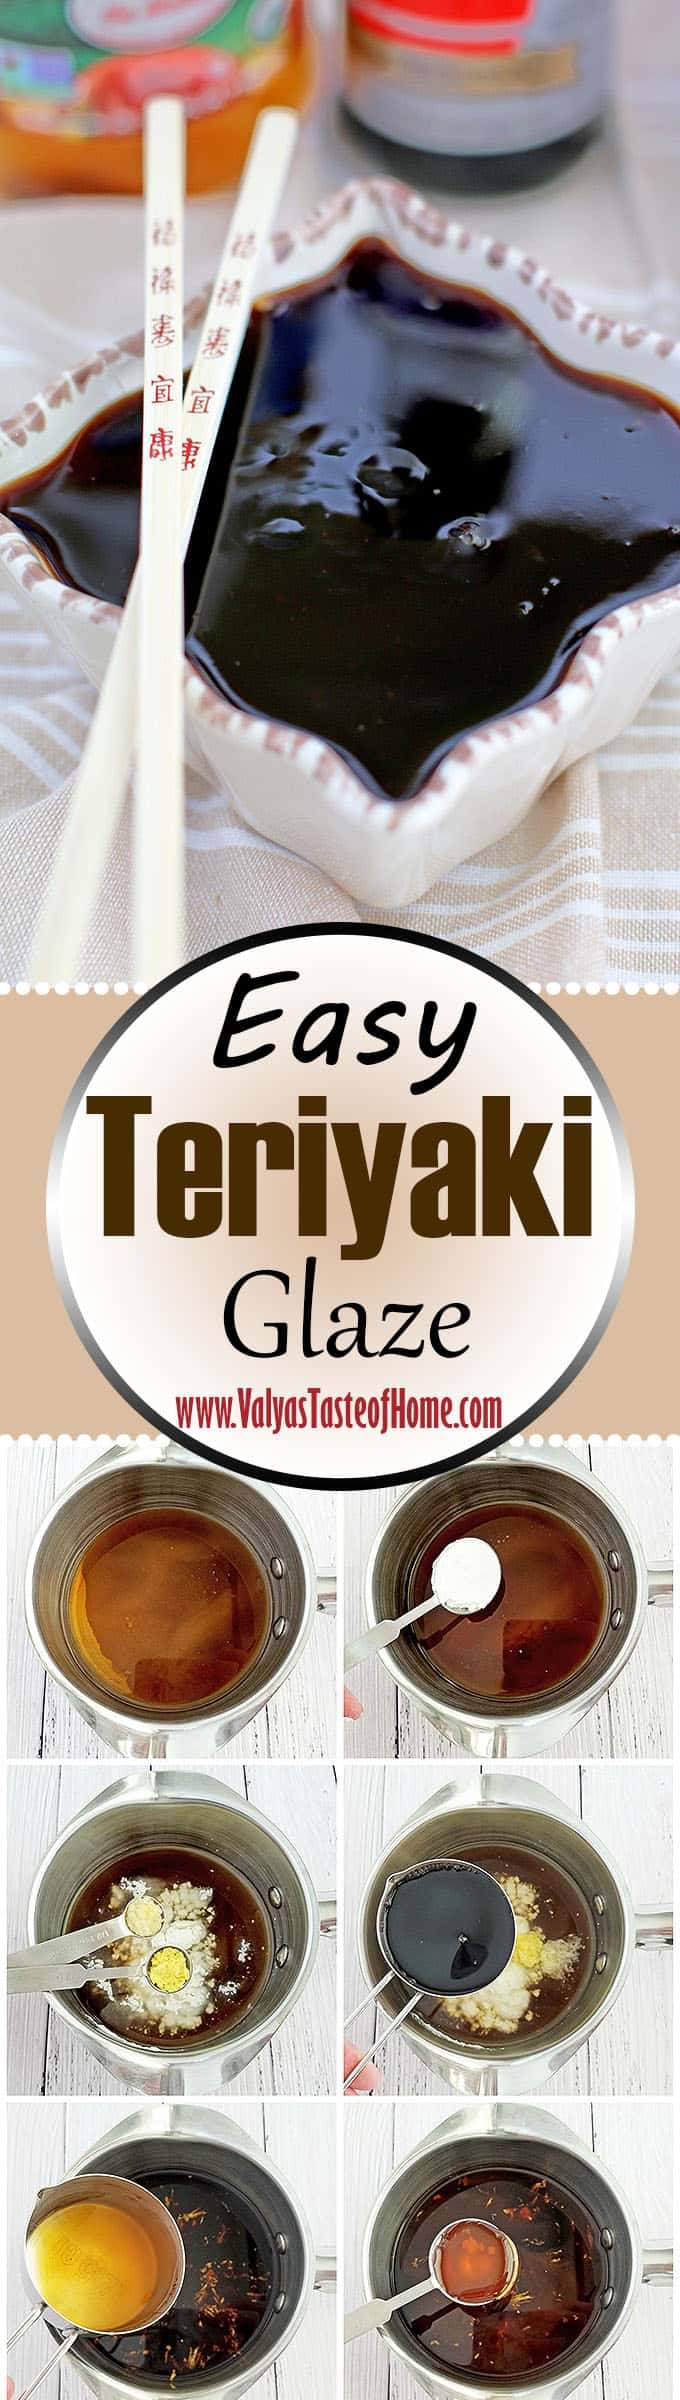 delicious, Easy Teriyaki Glaze Recipe, fresh garlic, fresh ginger, homemade, organic soy sauce, quick and easy recipe, raw honey, tasty recipe, teriyaki glaze